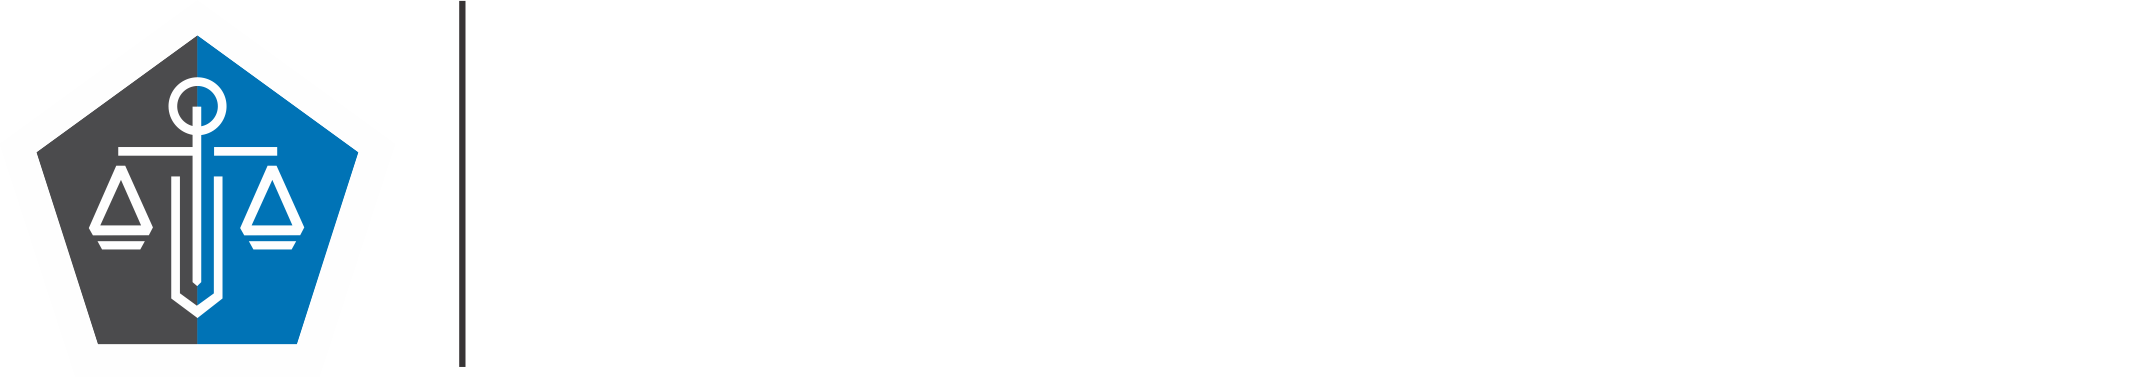 K Group Legal